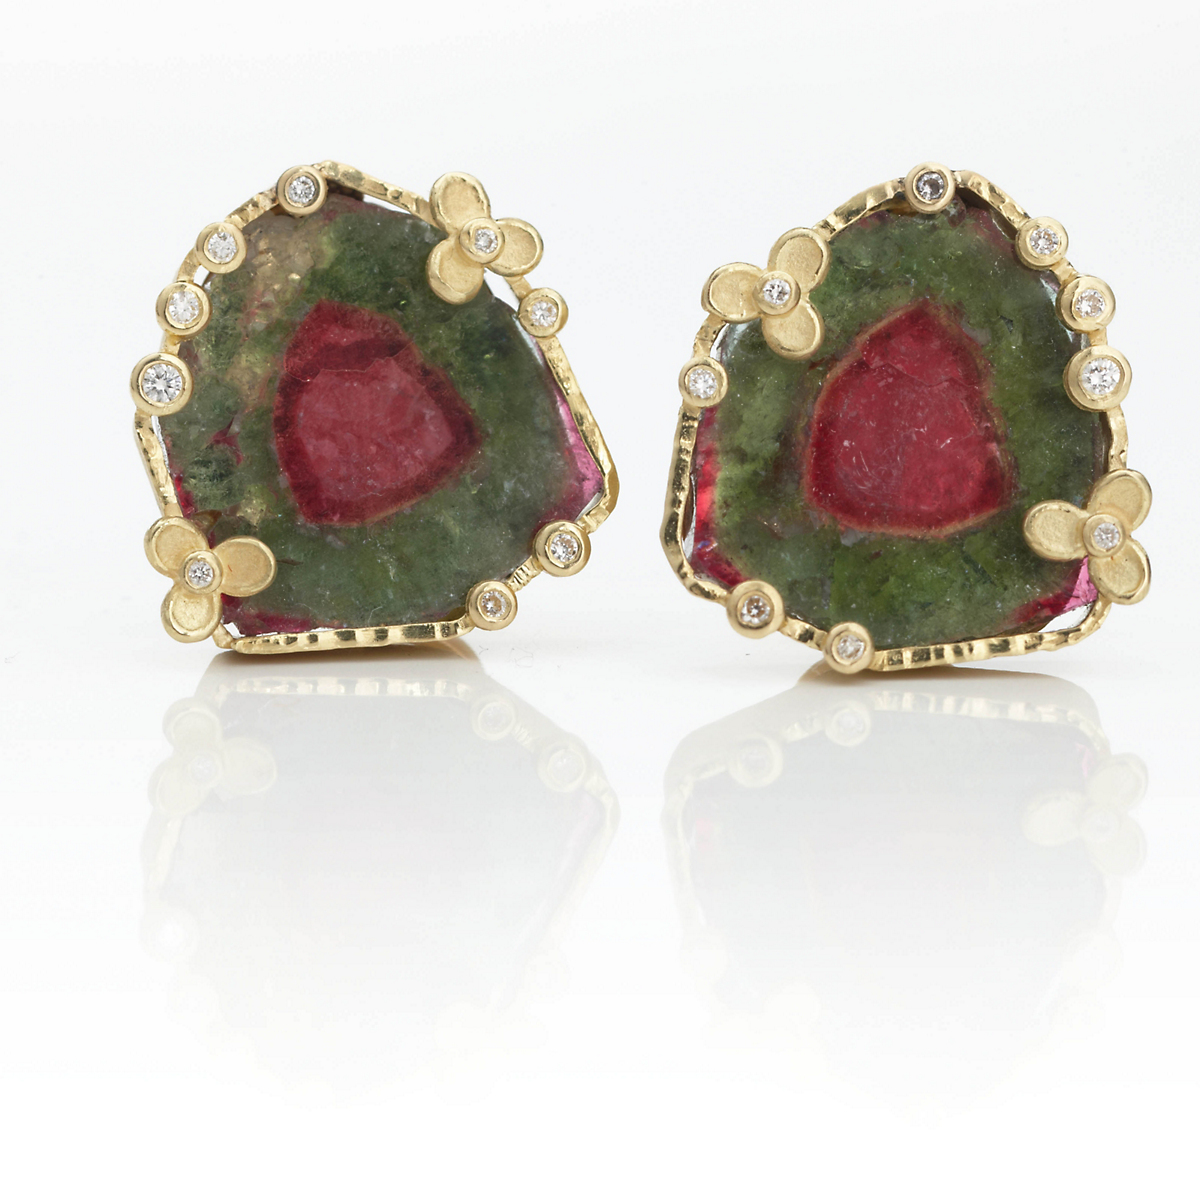 Barbara Heinrich Watermelon Tourmaline & Diamond Earclips